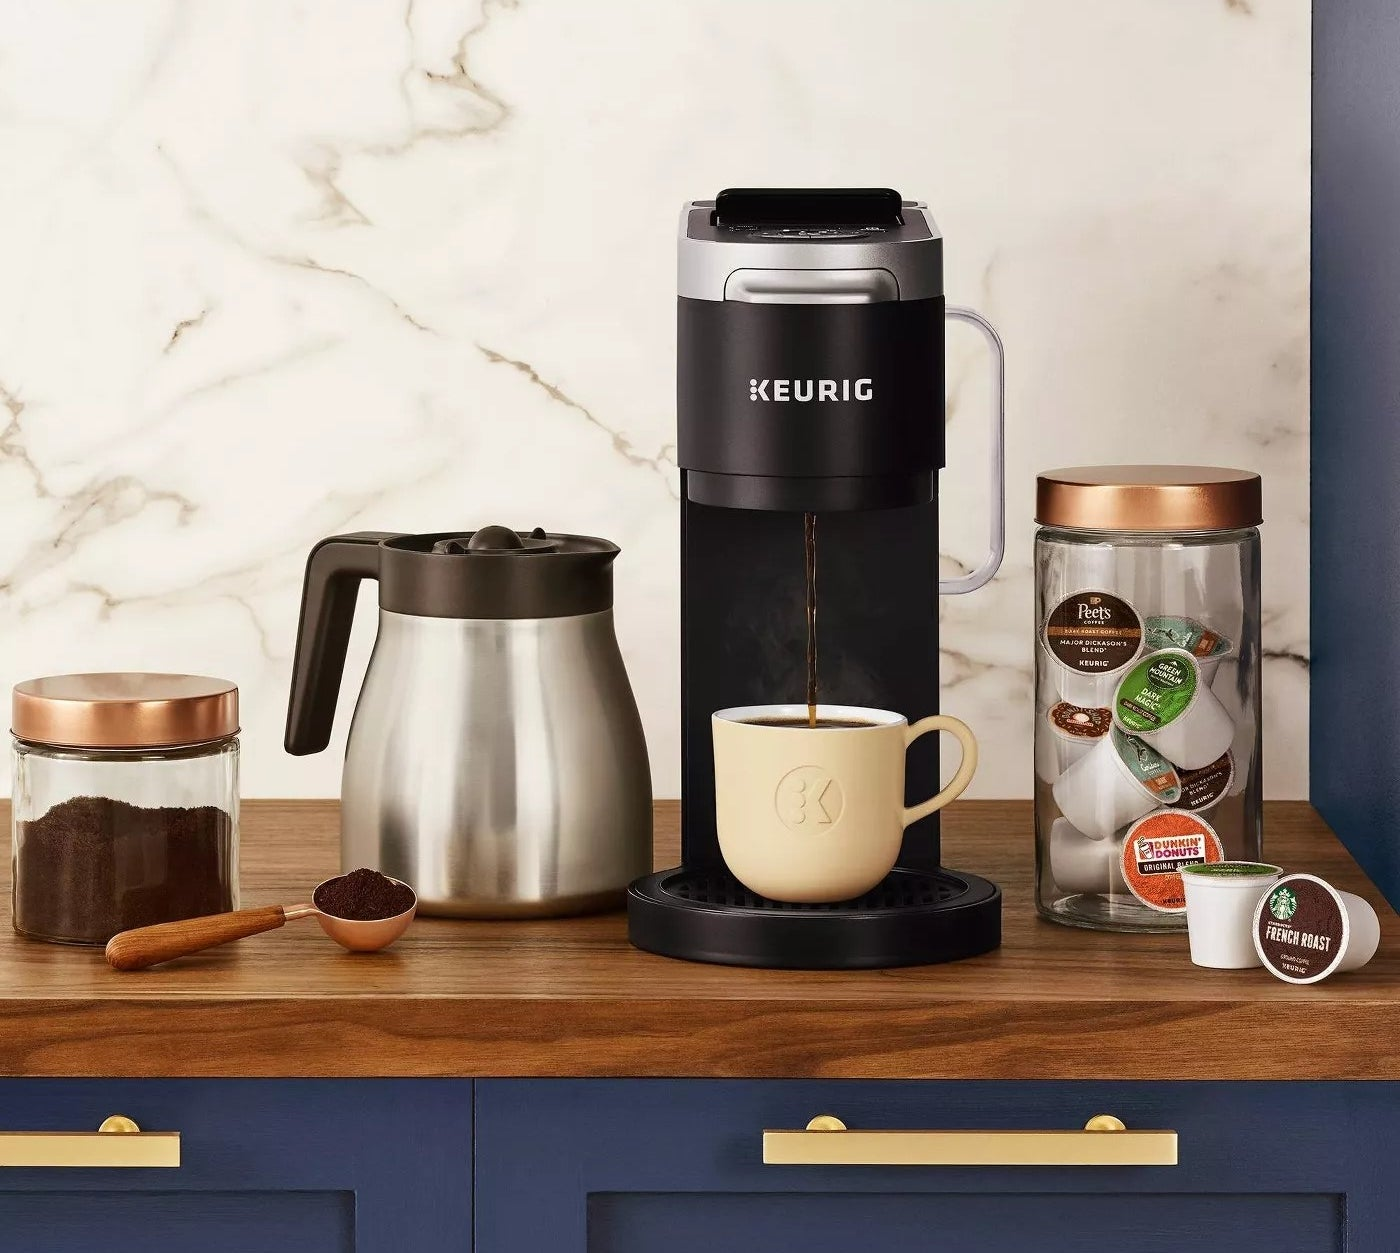 A Keurig machine making a cup of coffee next to its carafe and a jar of K-cups